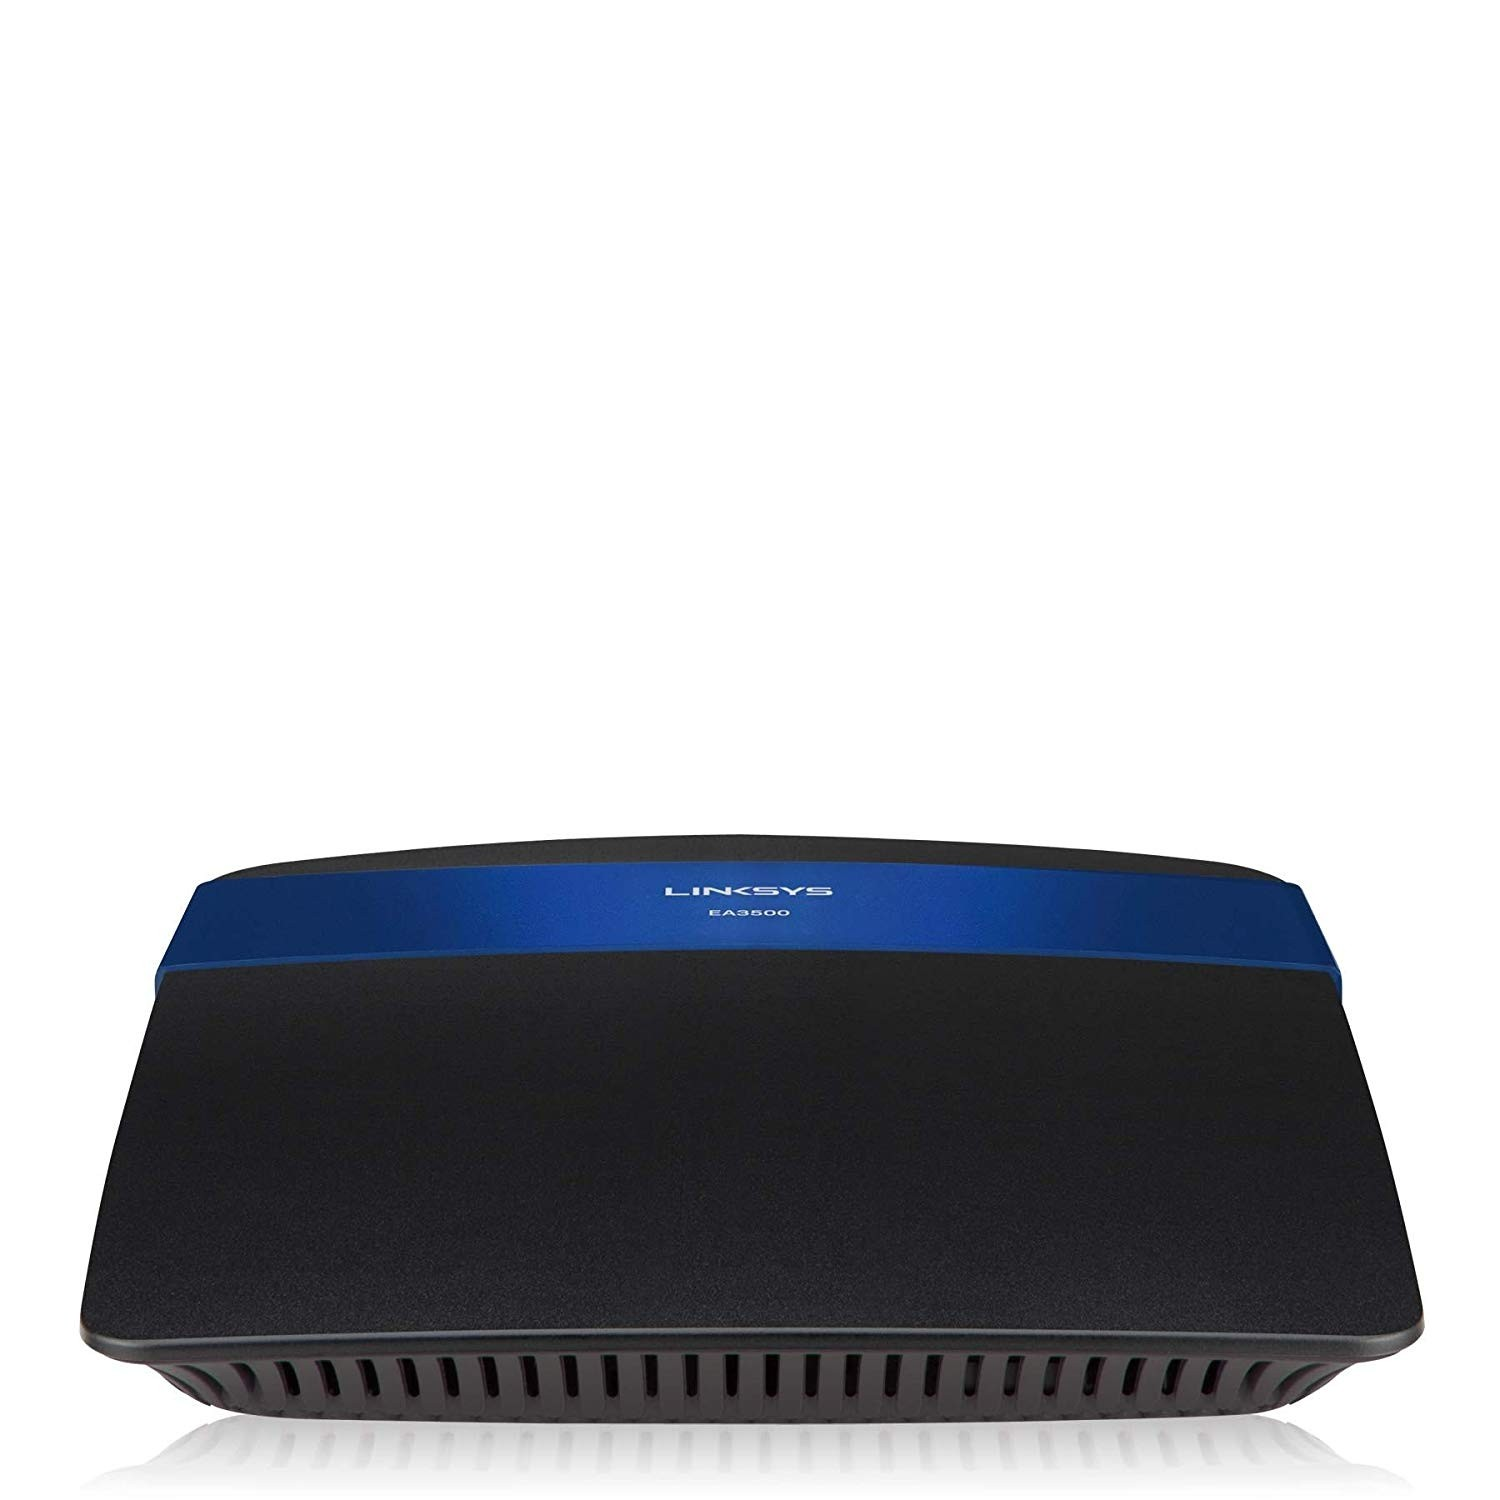 Linksys EA3500 Wireless Router - 300 Mbps - 2.4 GHz / 5 GHz - Gigabit Ethernet - 802.11b/a/g/n